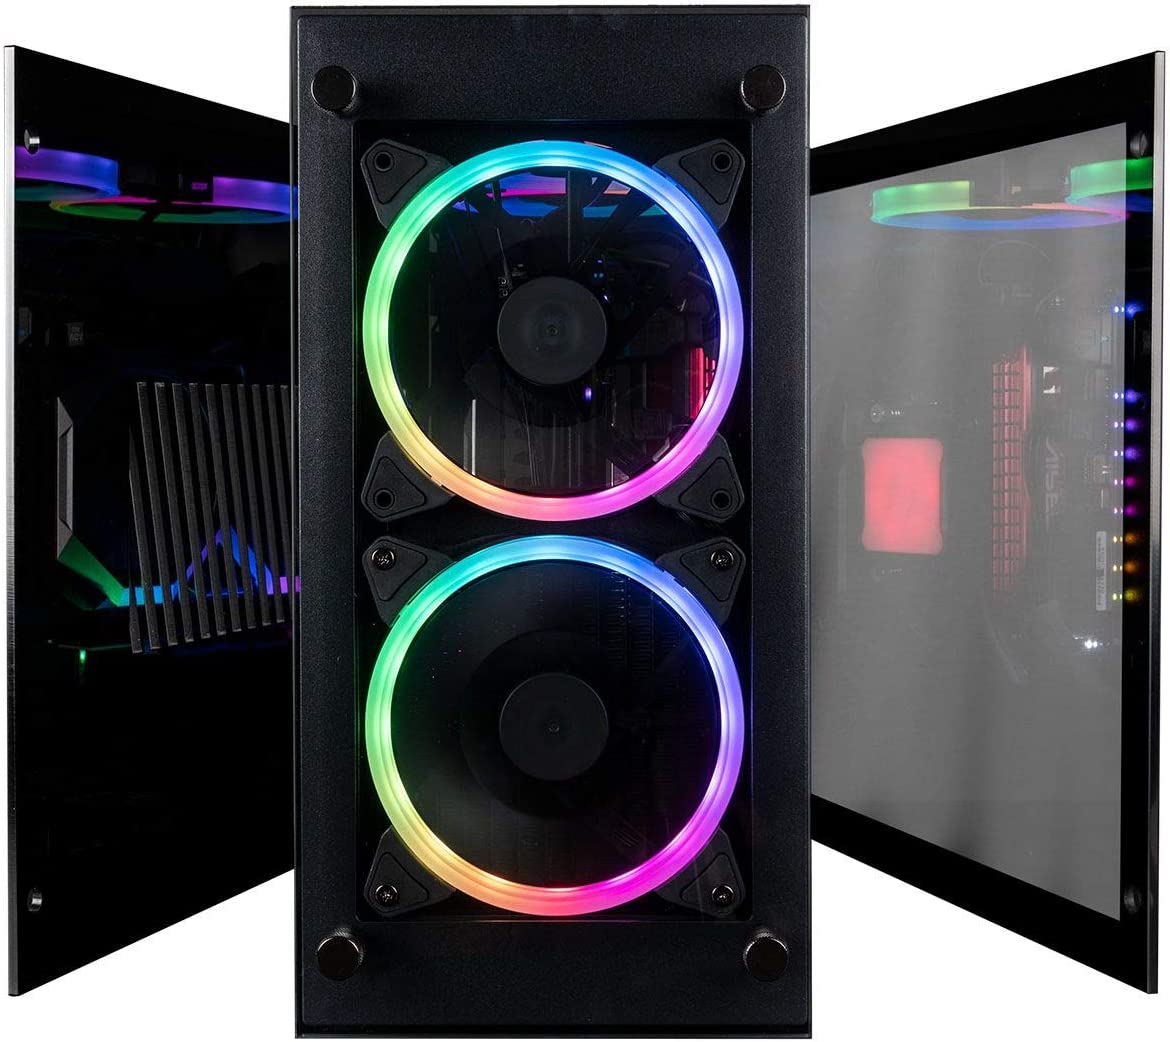 CUK Stratos Mini Gaming PC (Liquid Cooled AMD Ryzen 7, 32GB RAM, 512GB NVMe SSD + 1TB HDD, NVIDIA GeForce RTX 3070 8GB, 650W Gold PSU, AC WiFi, Windows 10 Home) Tiny RGB Desktop Computer for Gamers